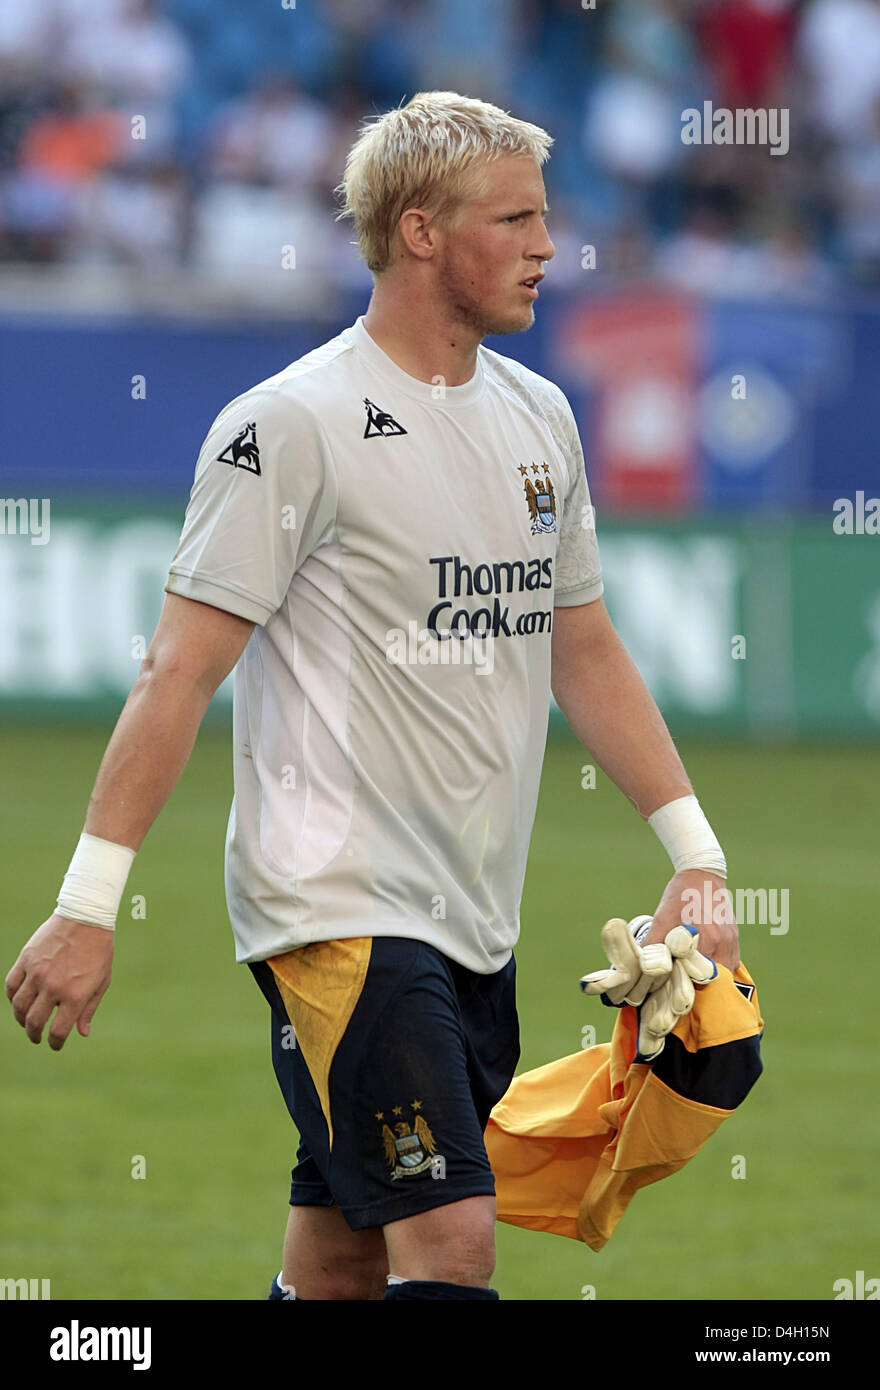 Kaspar Schmeichel, Danish goalkeeper of English Premiere League club Manchester City seen after the friendly against - Stock Image